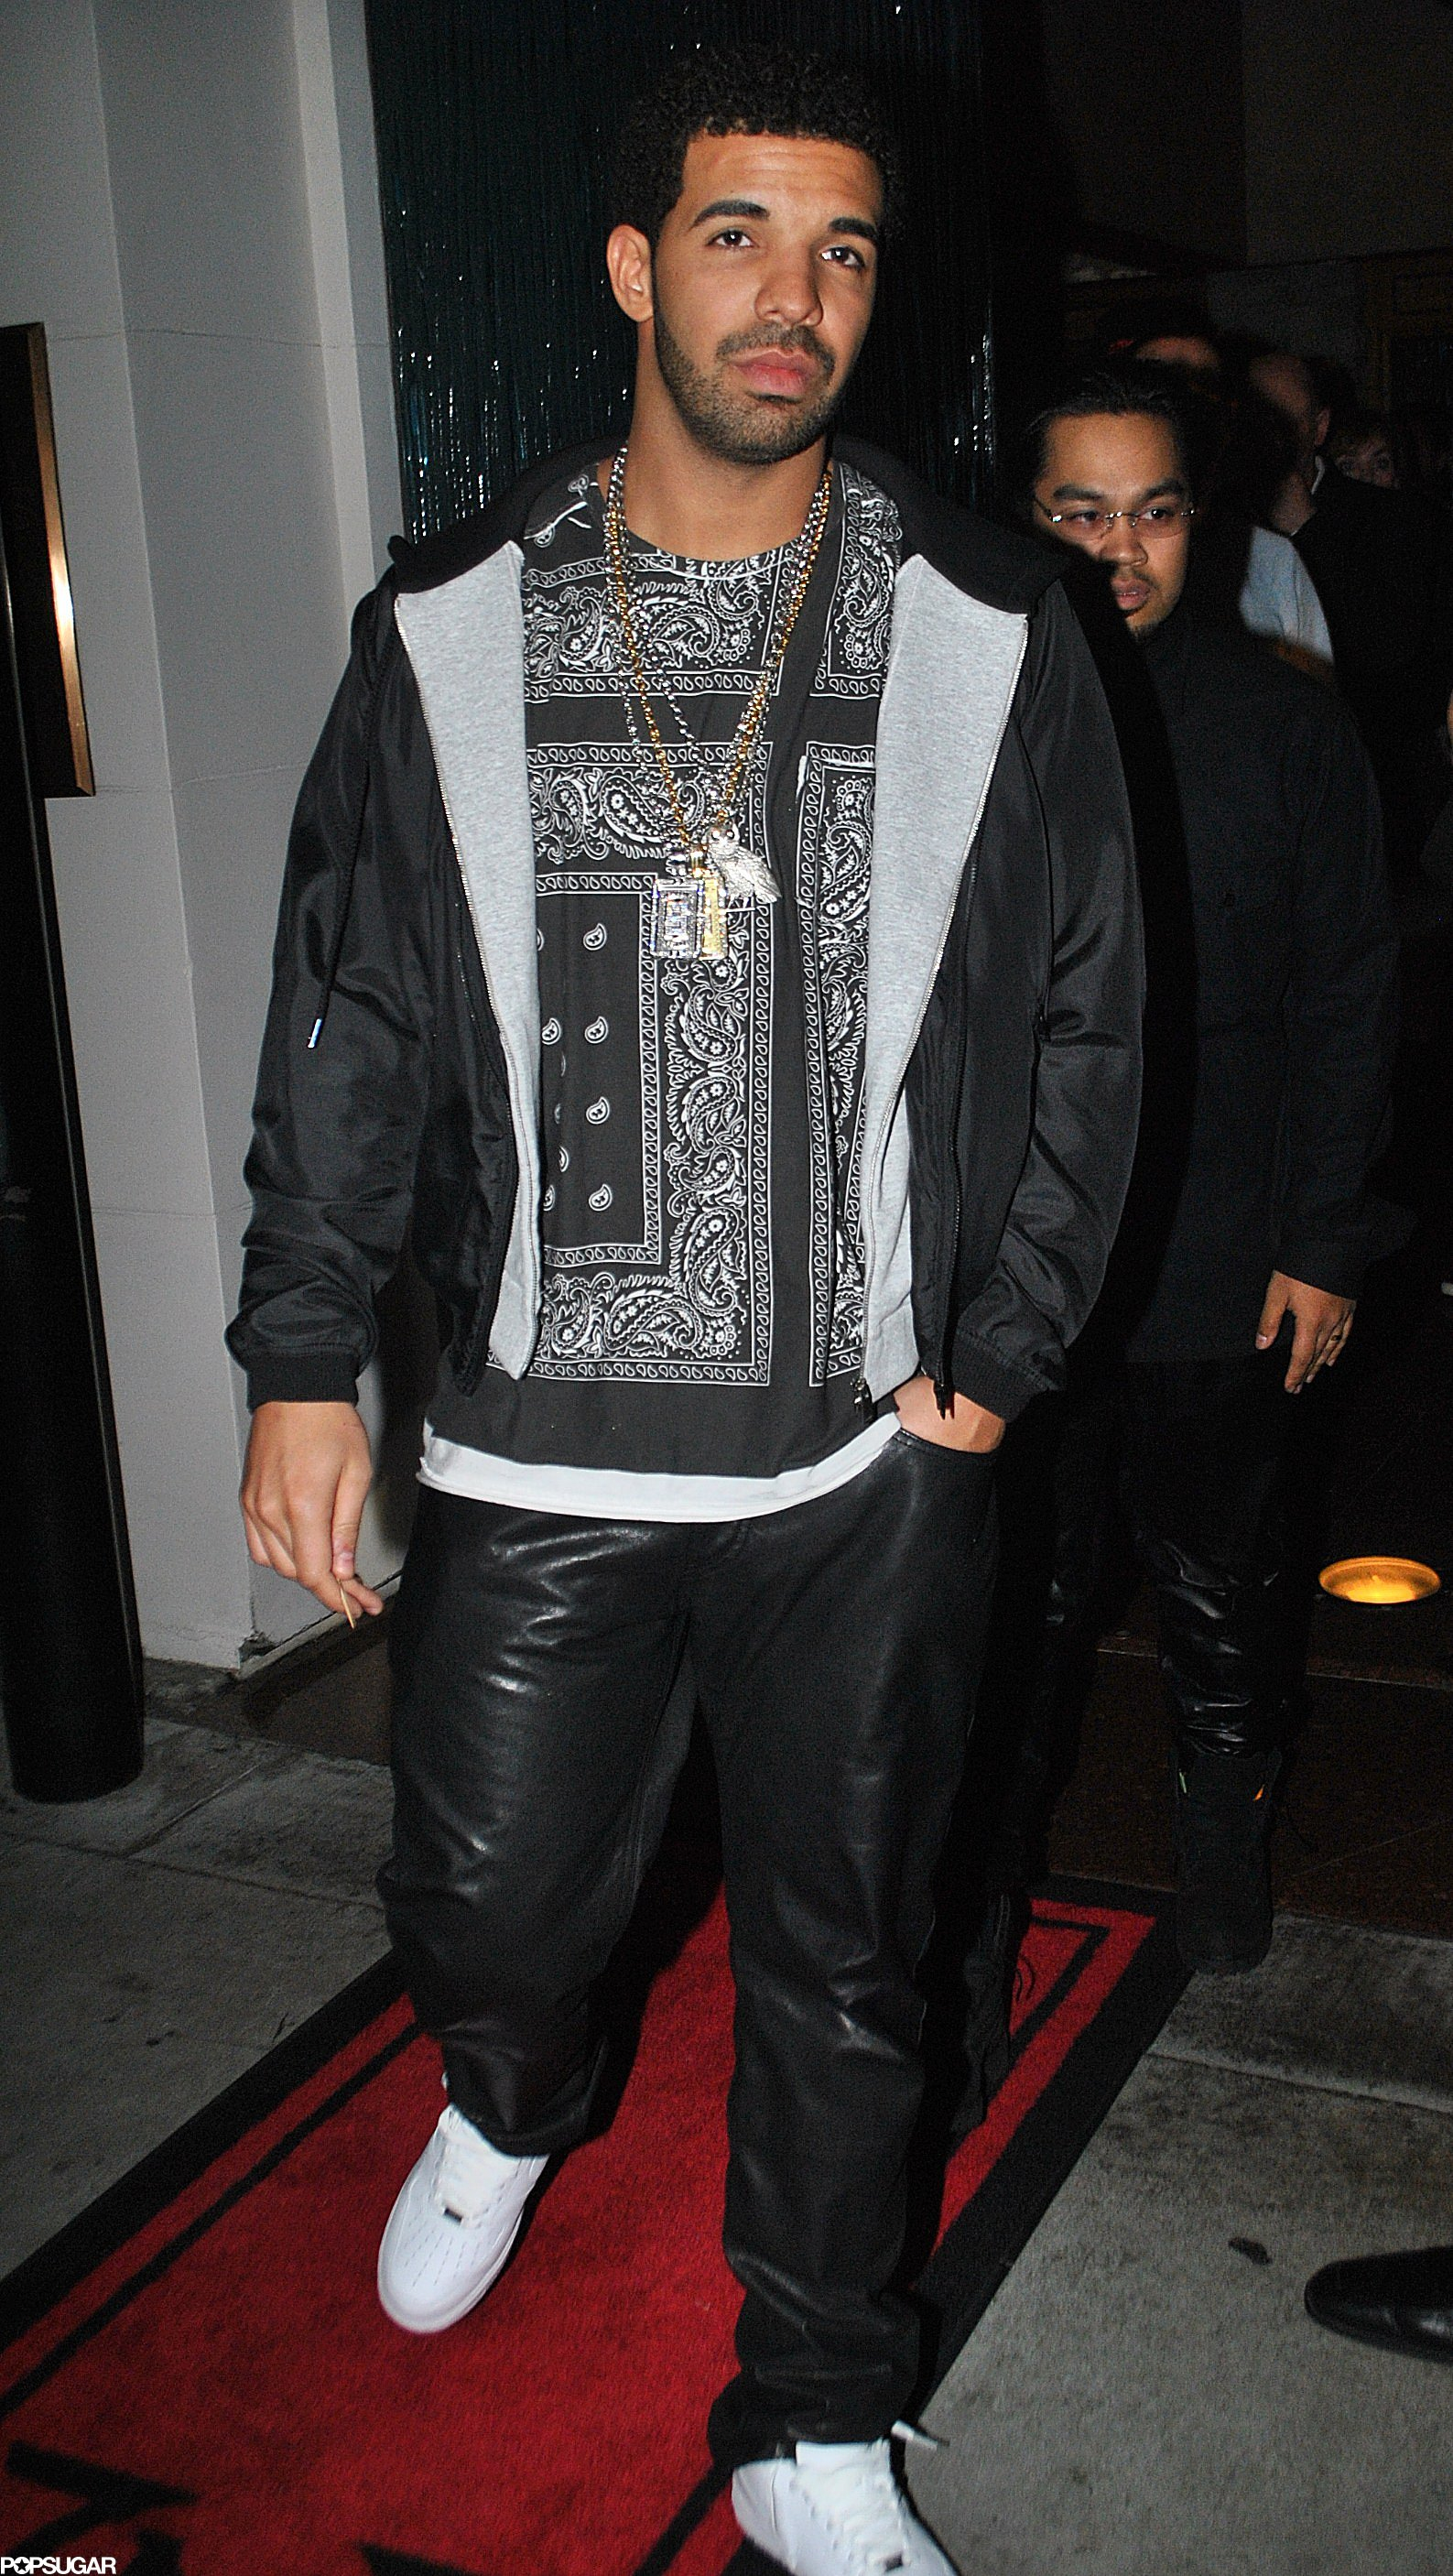 Drake attended a Grammy afterparty Sunday night in Hollywood.